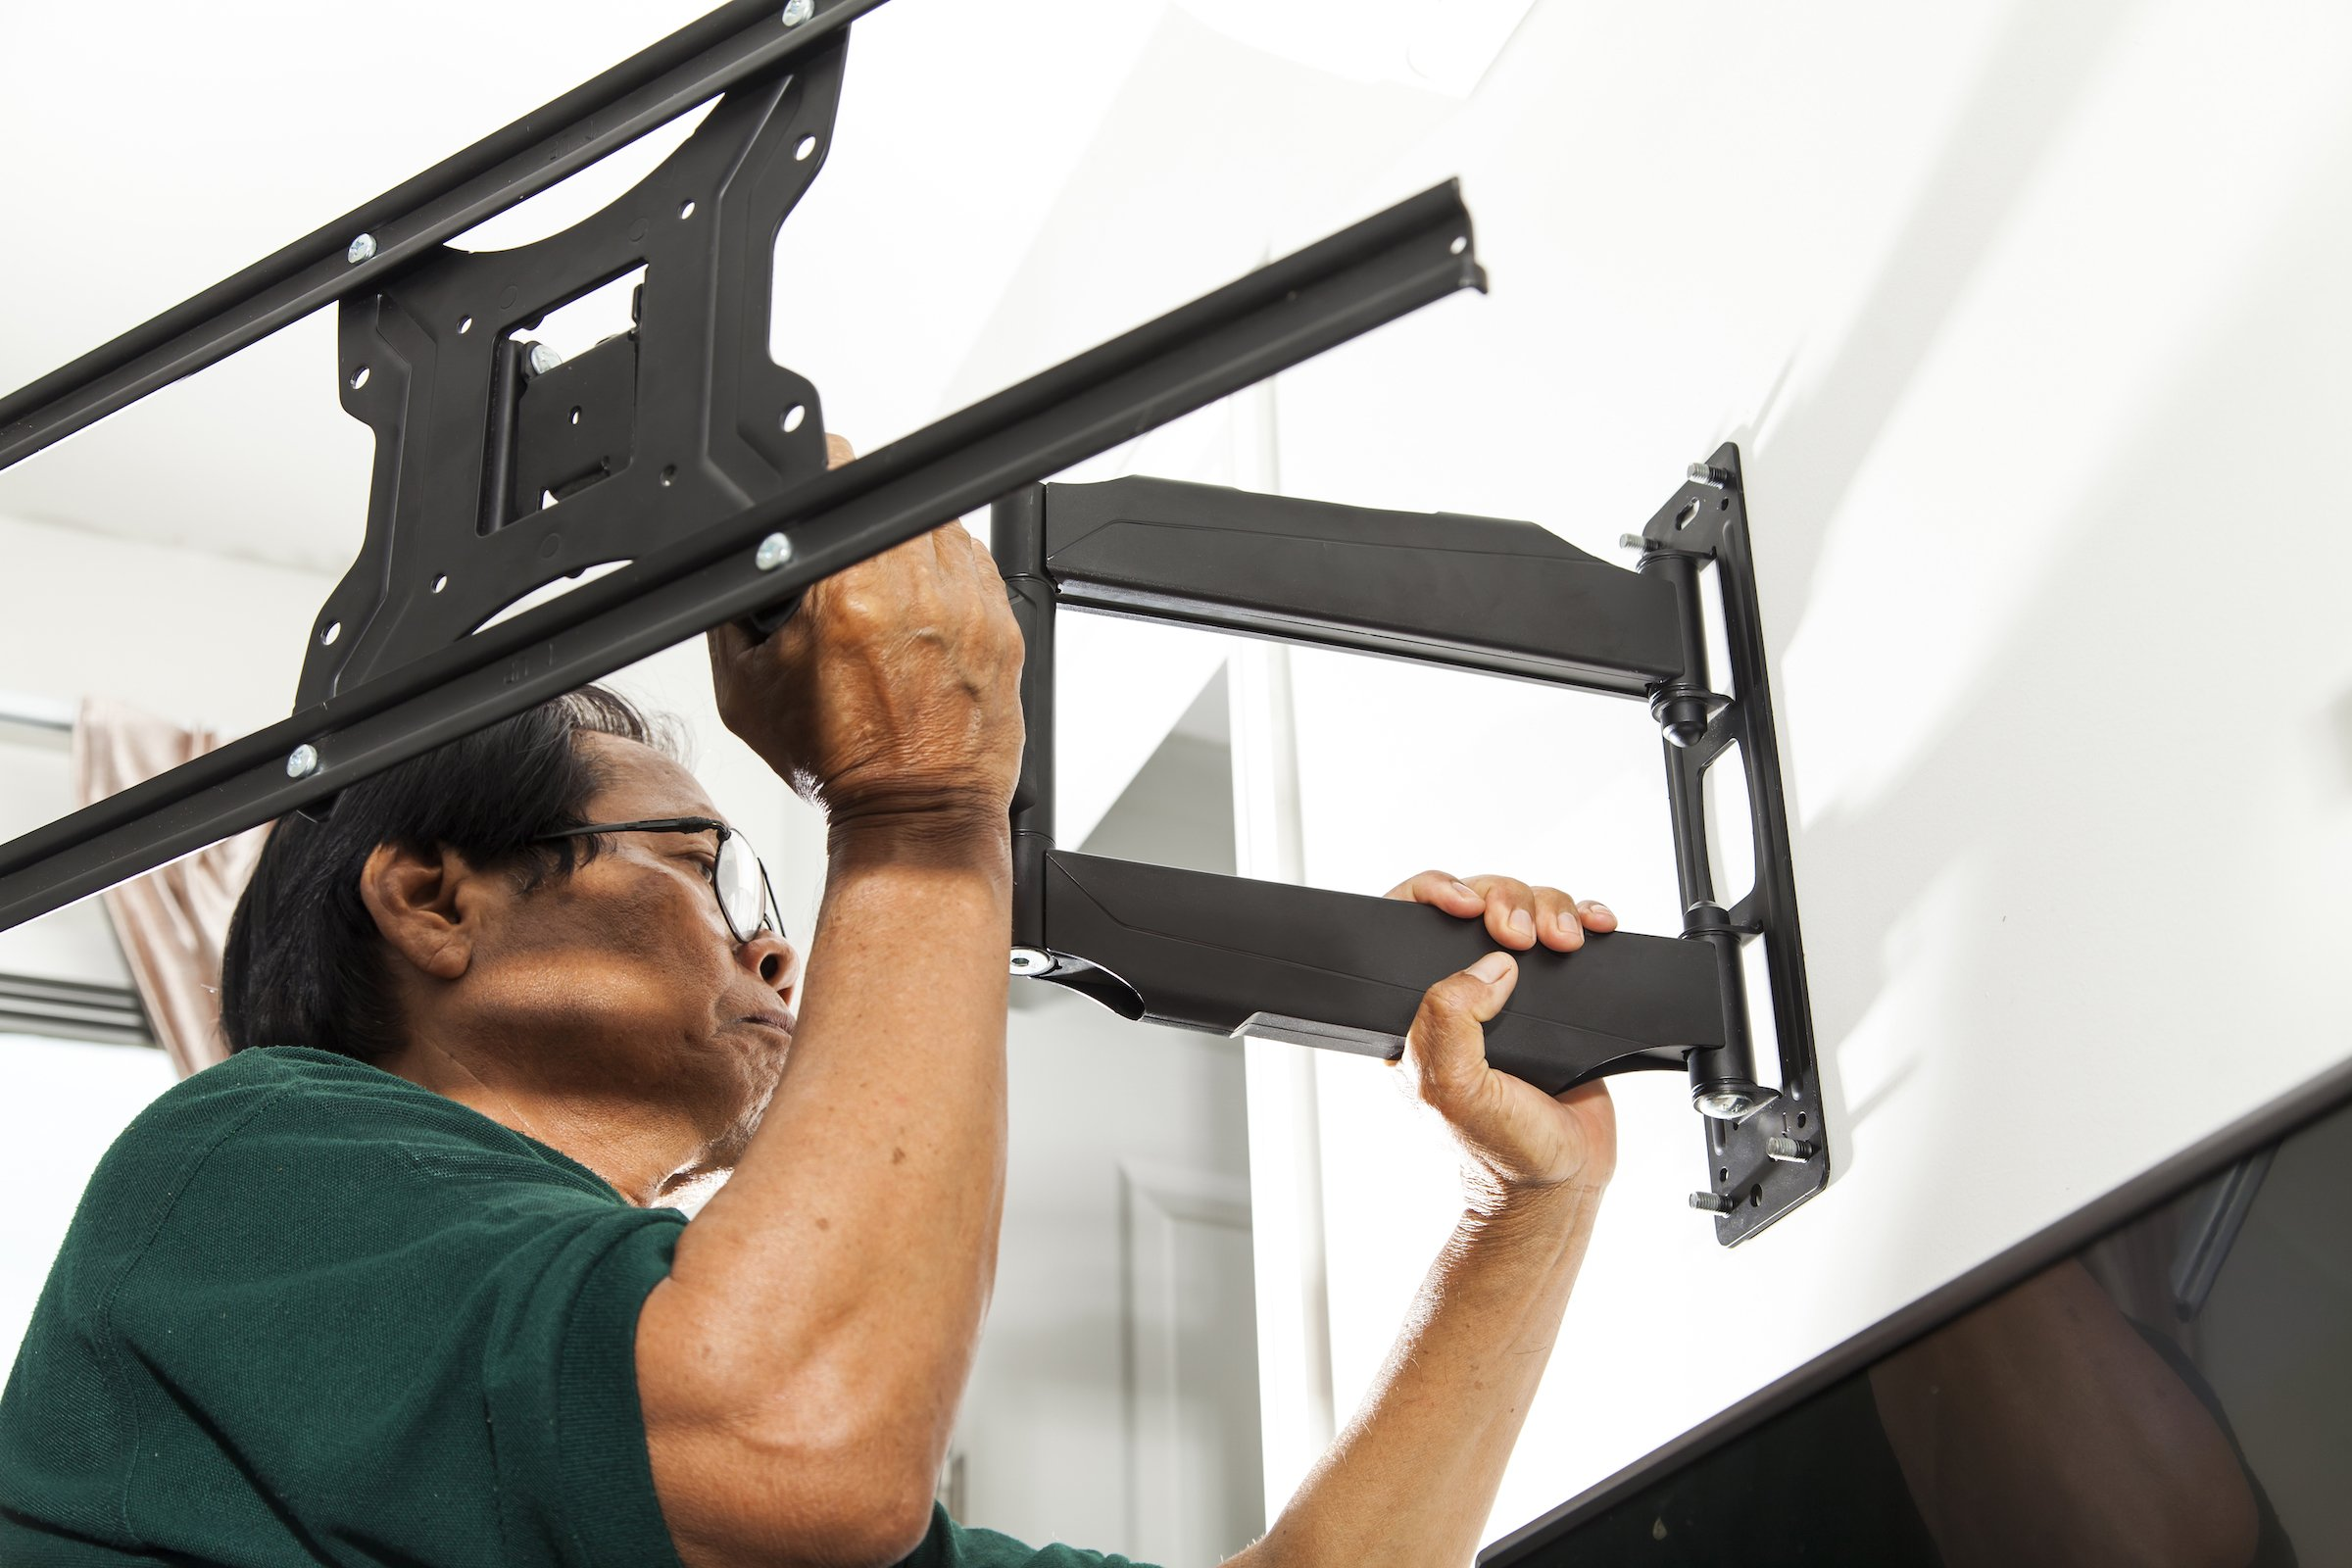 Call in a professional to help you install your single stud TV mount.